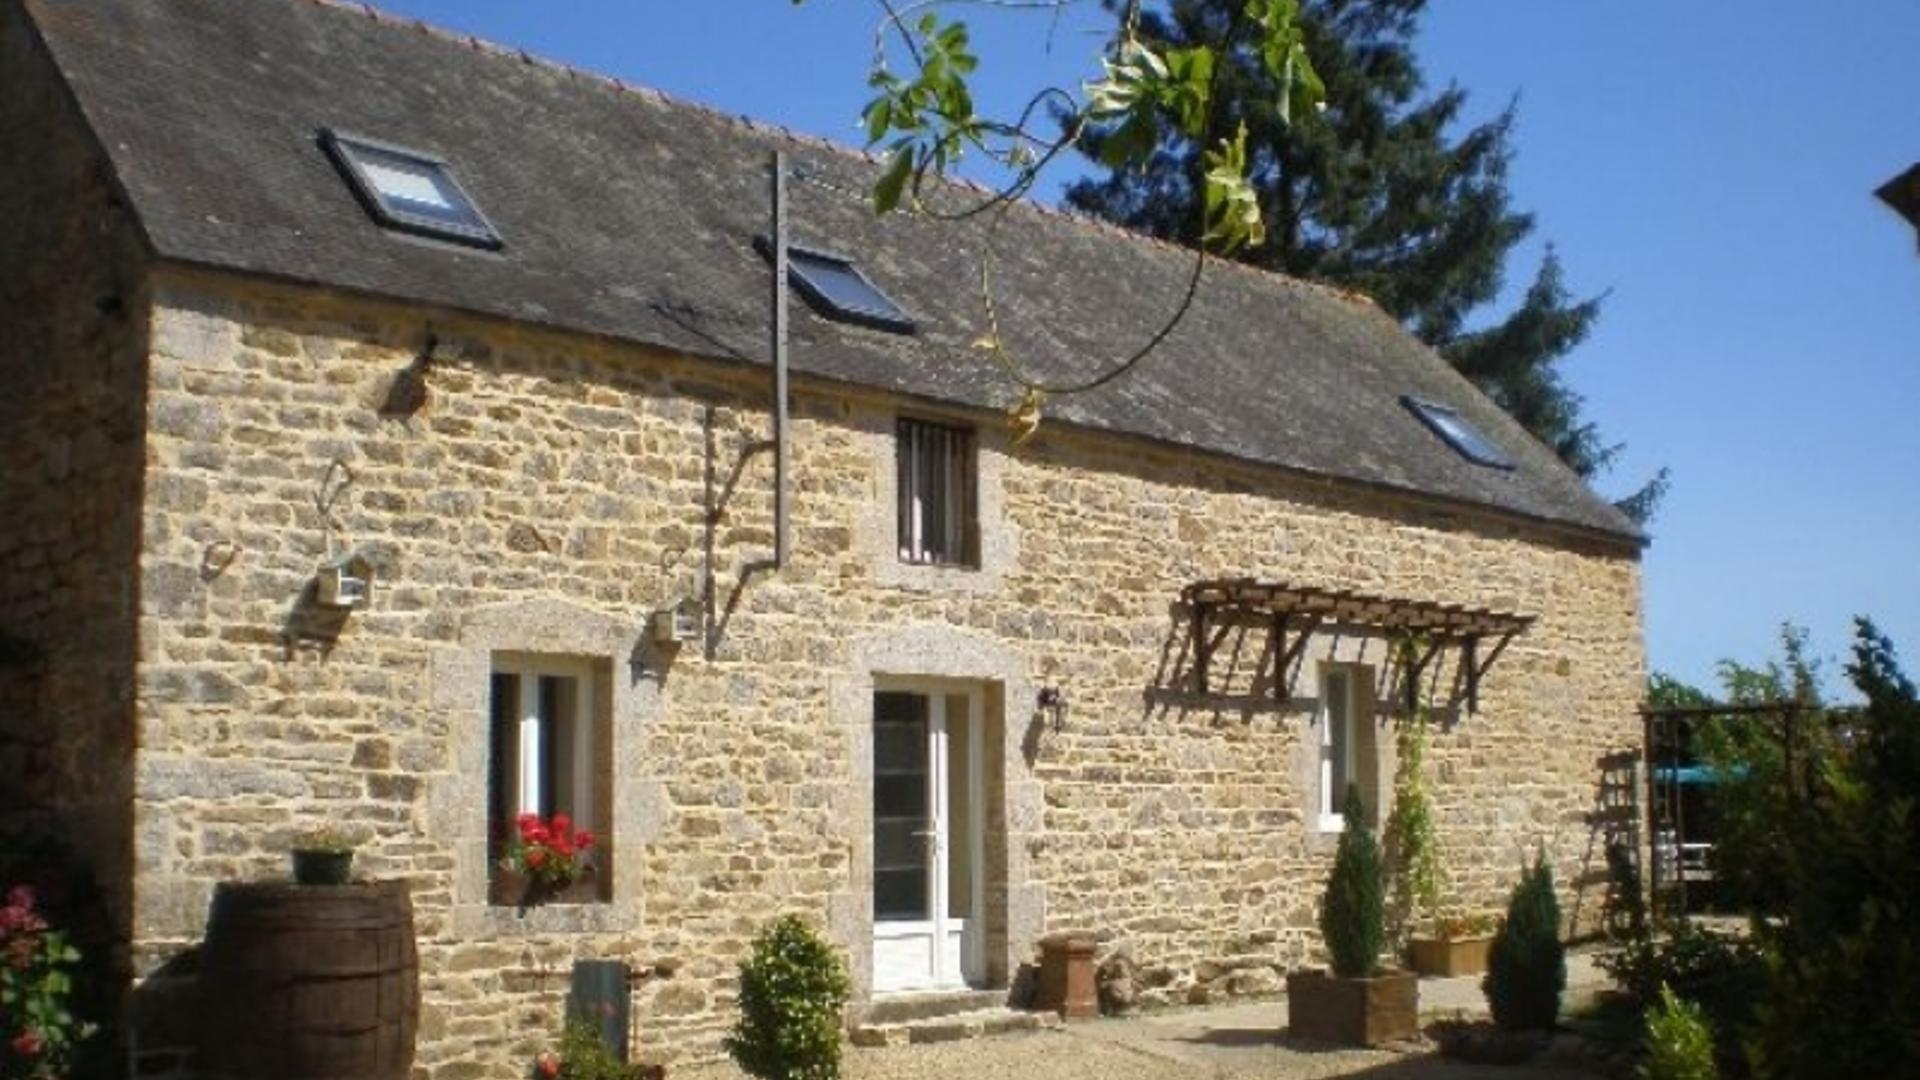 5 Bedroom Private cottage/shared facilities in Brittany, France